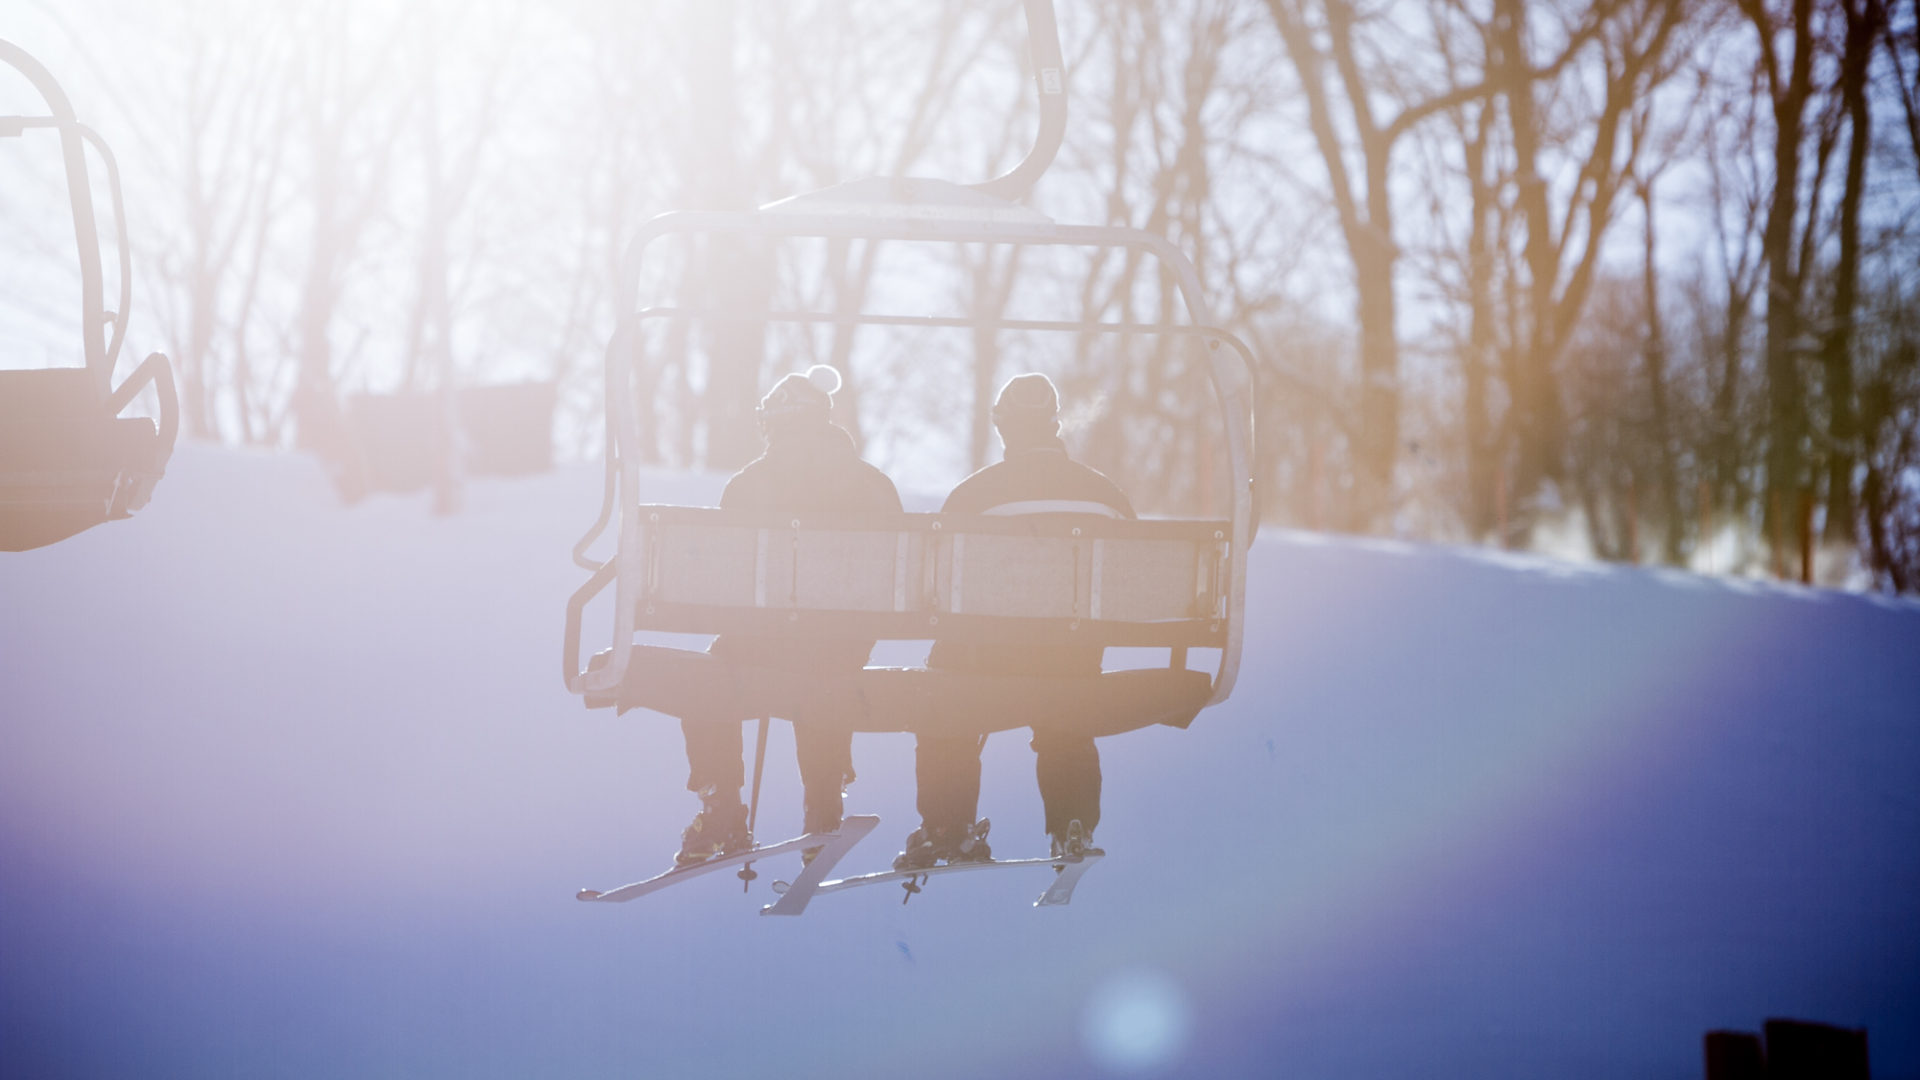 season's pass terms & conditions at horseshoe resort, barrie ontario